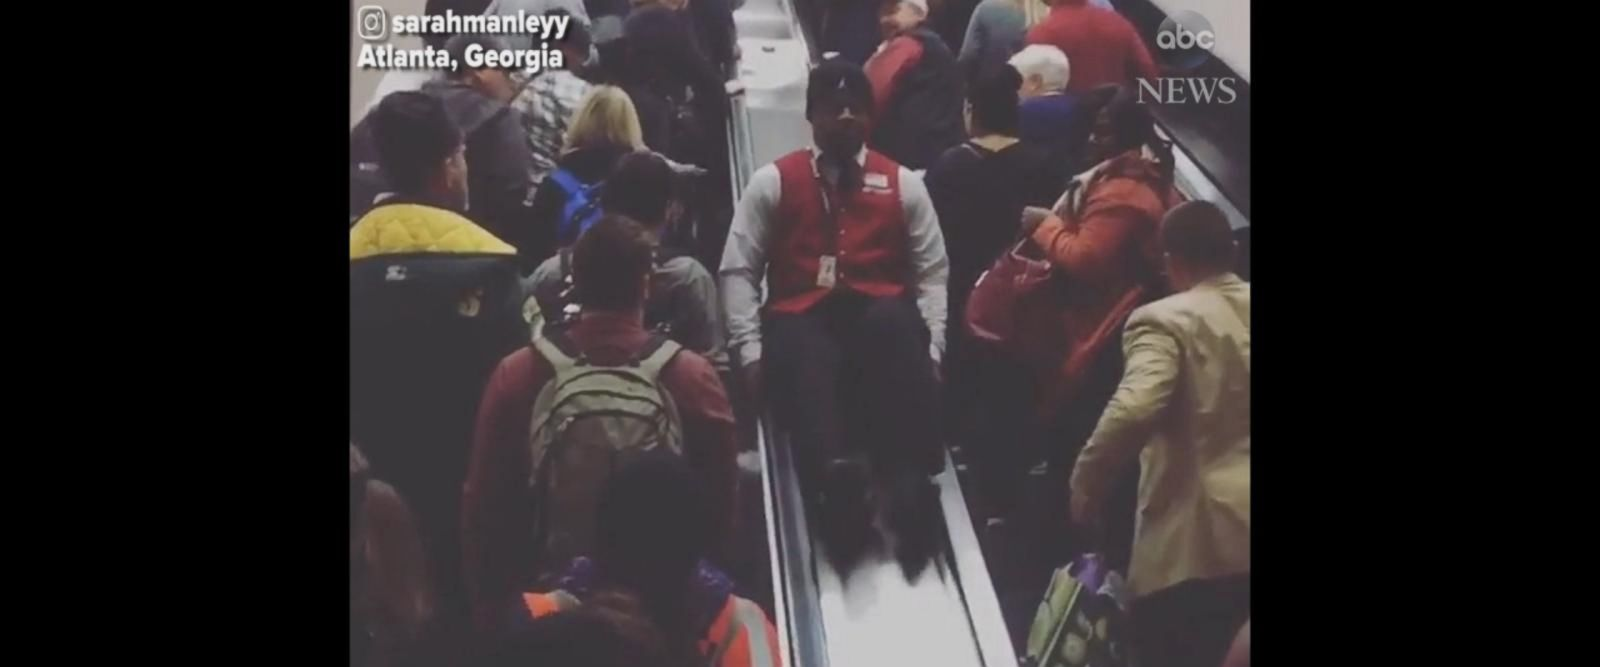 VIDEO: Atlanta airport worker slides down escalator during power outage